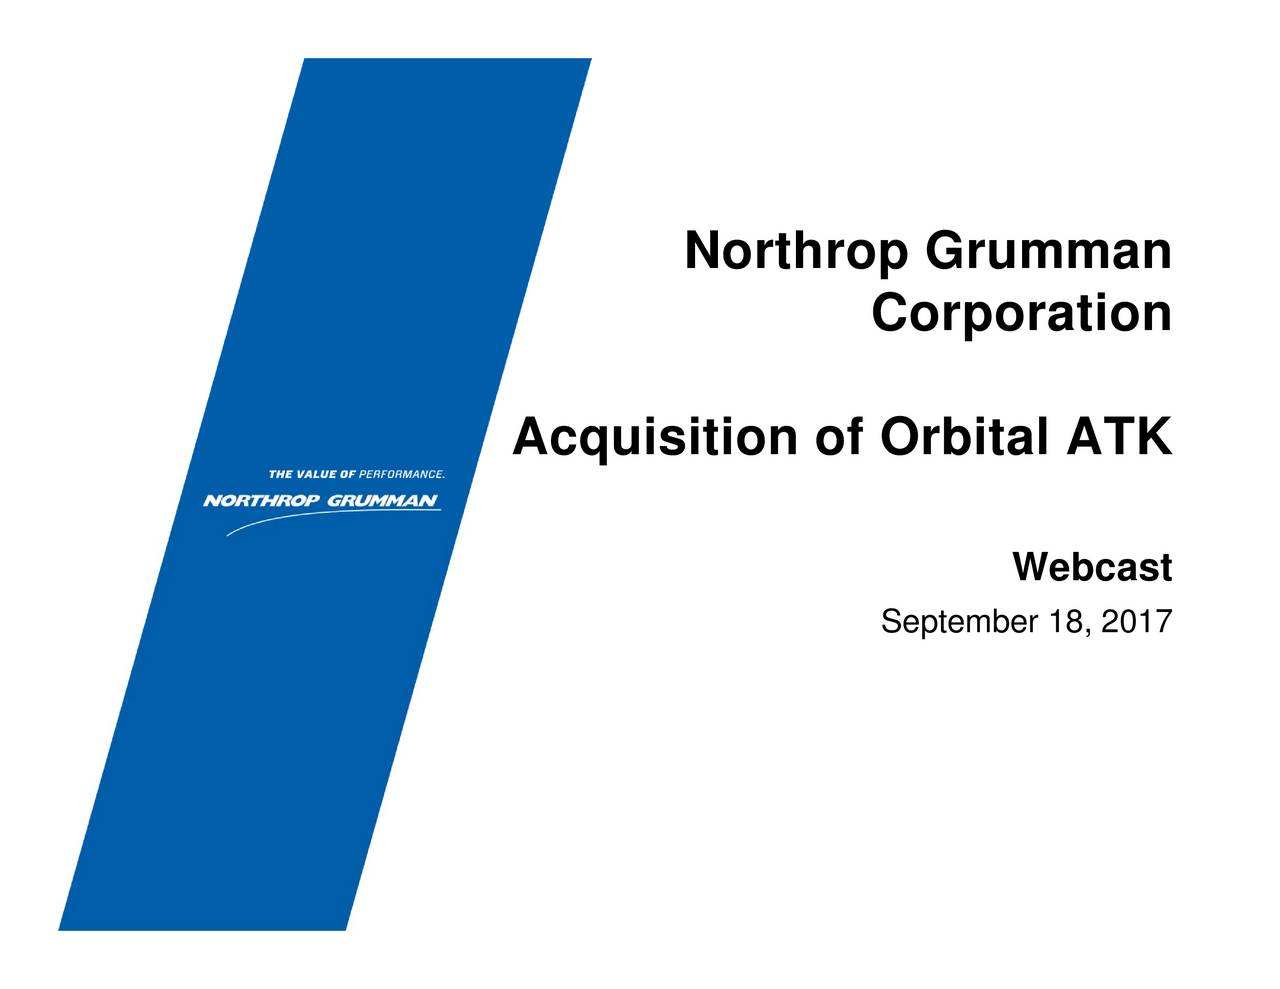 financial analysis of northrop grumman Northrop grumman corporation financial and strategic analysis review summary northrop grumman corporation (northrop grumman) is a global defense and technology company offering products and.